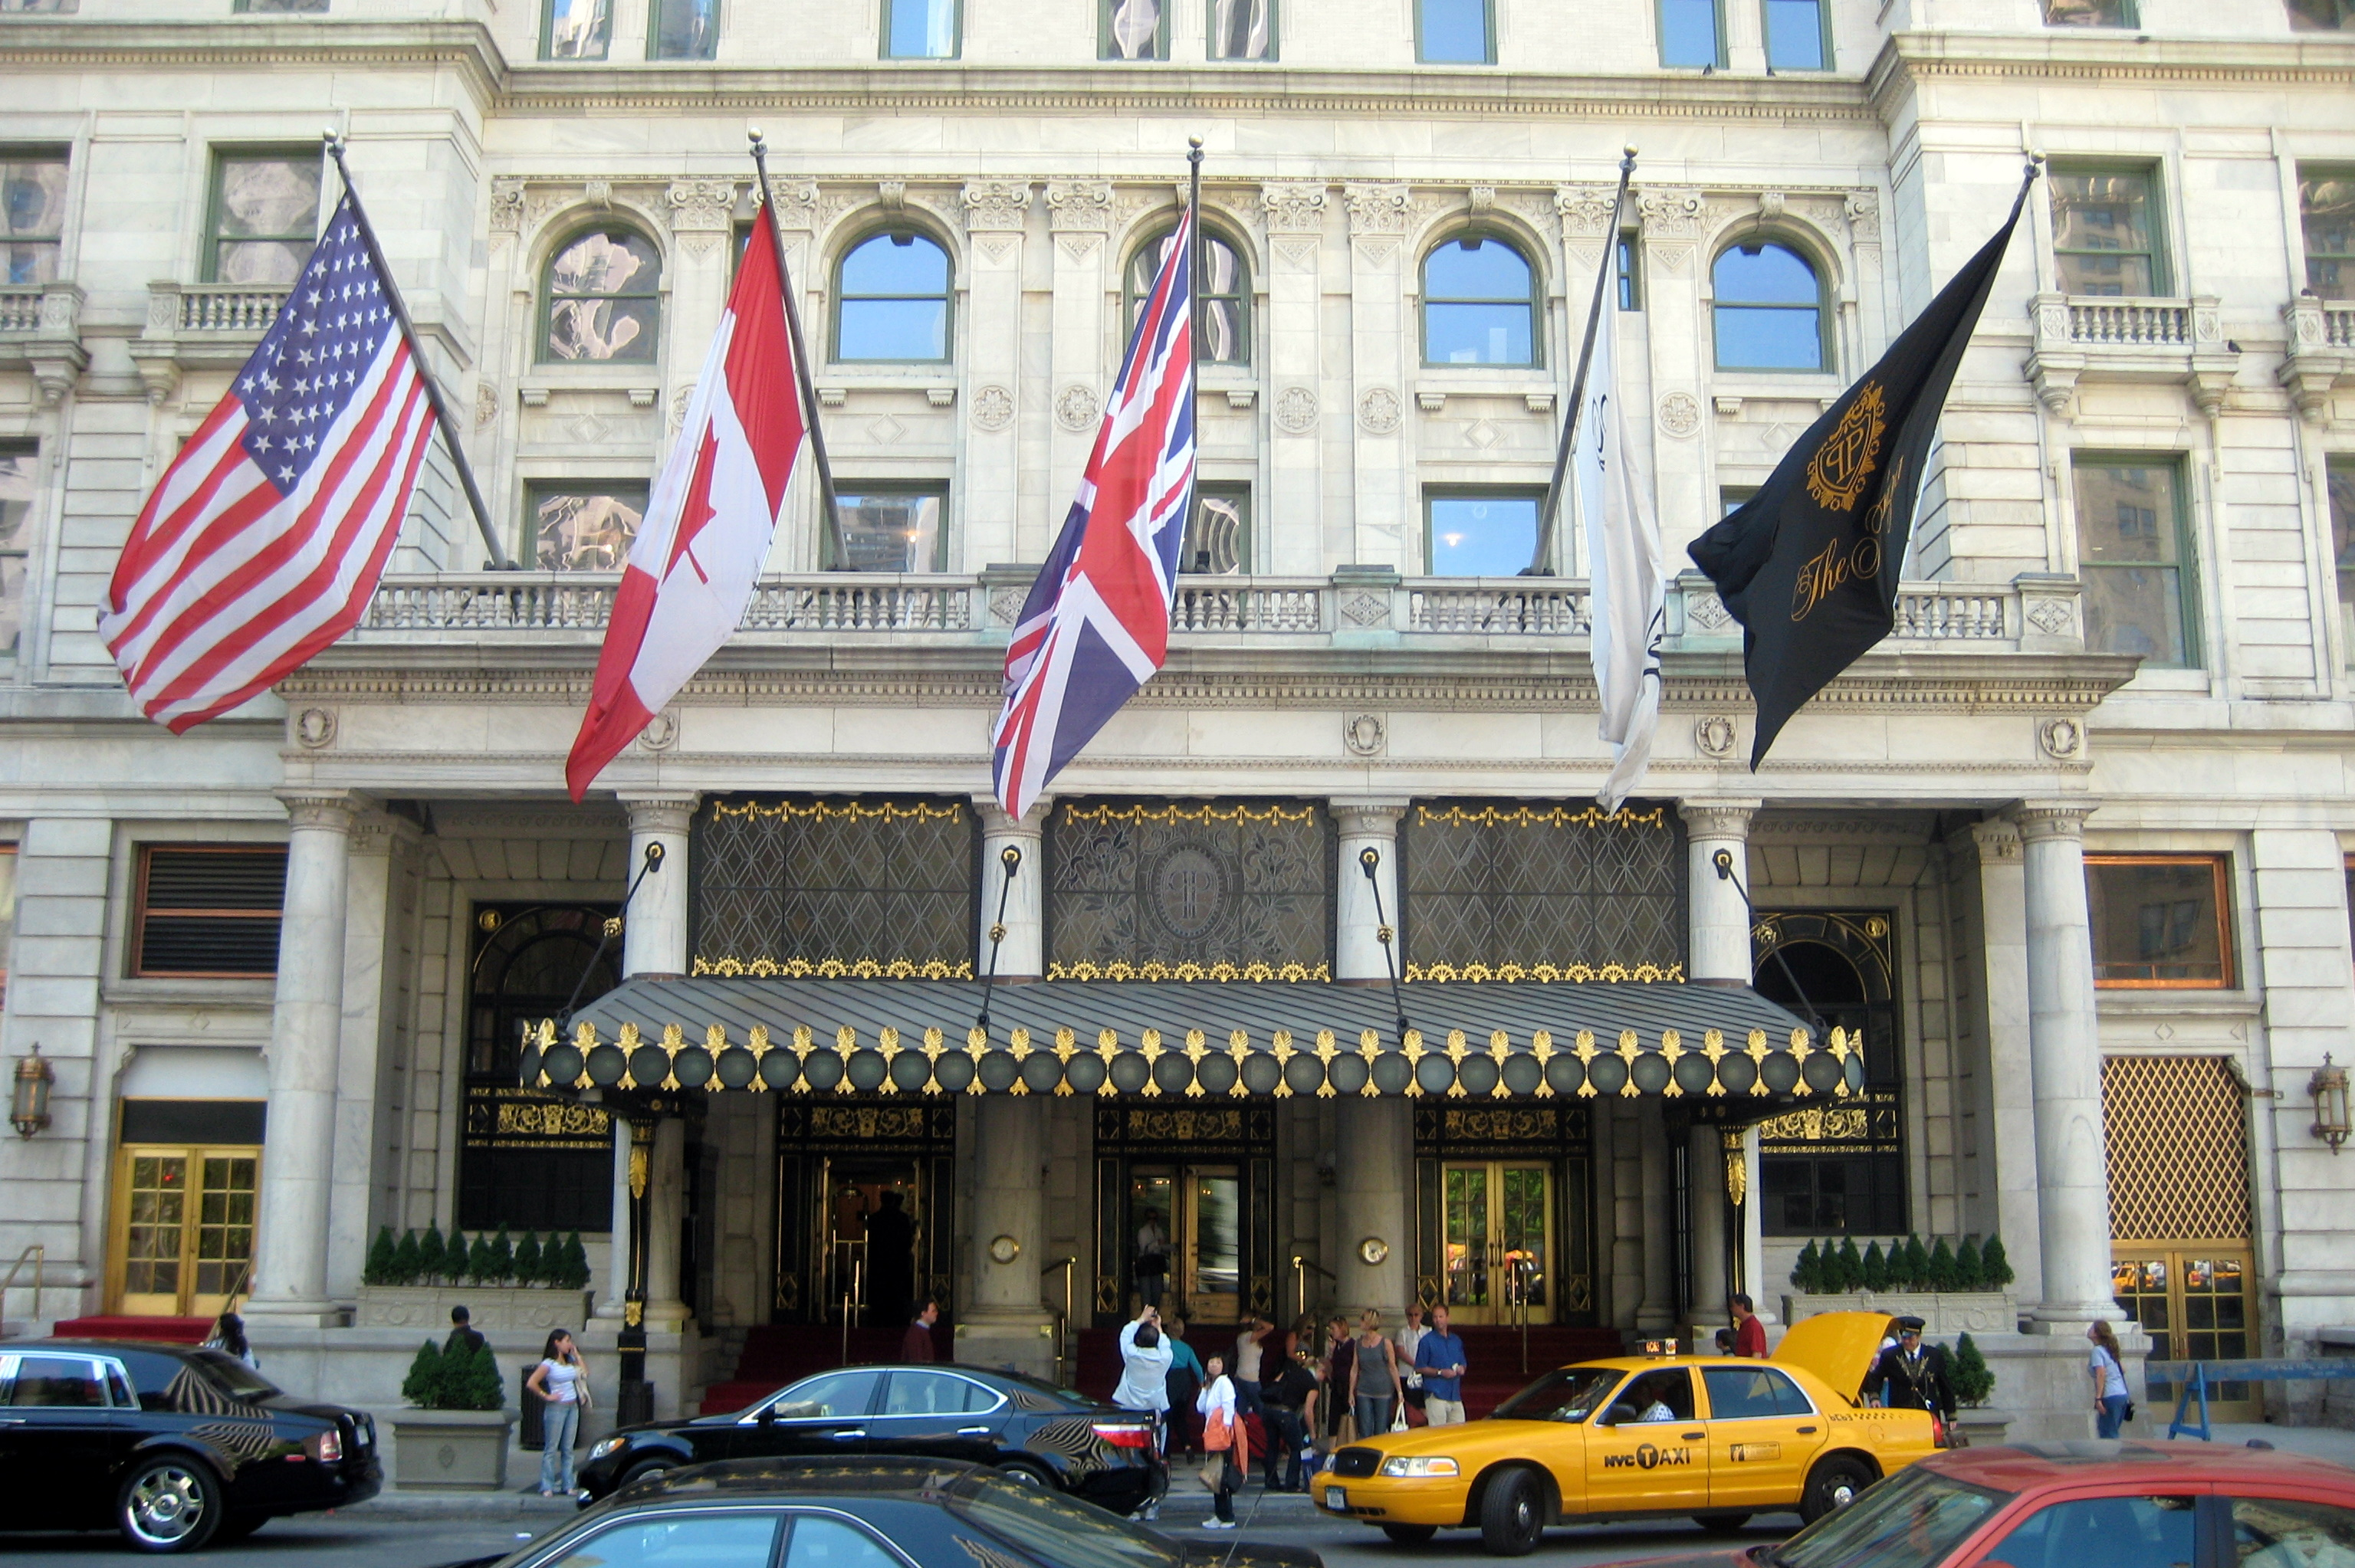 plaza hotel hotel in new york city thousand wonders. Black Bedroom Furniture Sets. Home Design Ideas